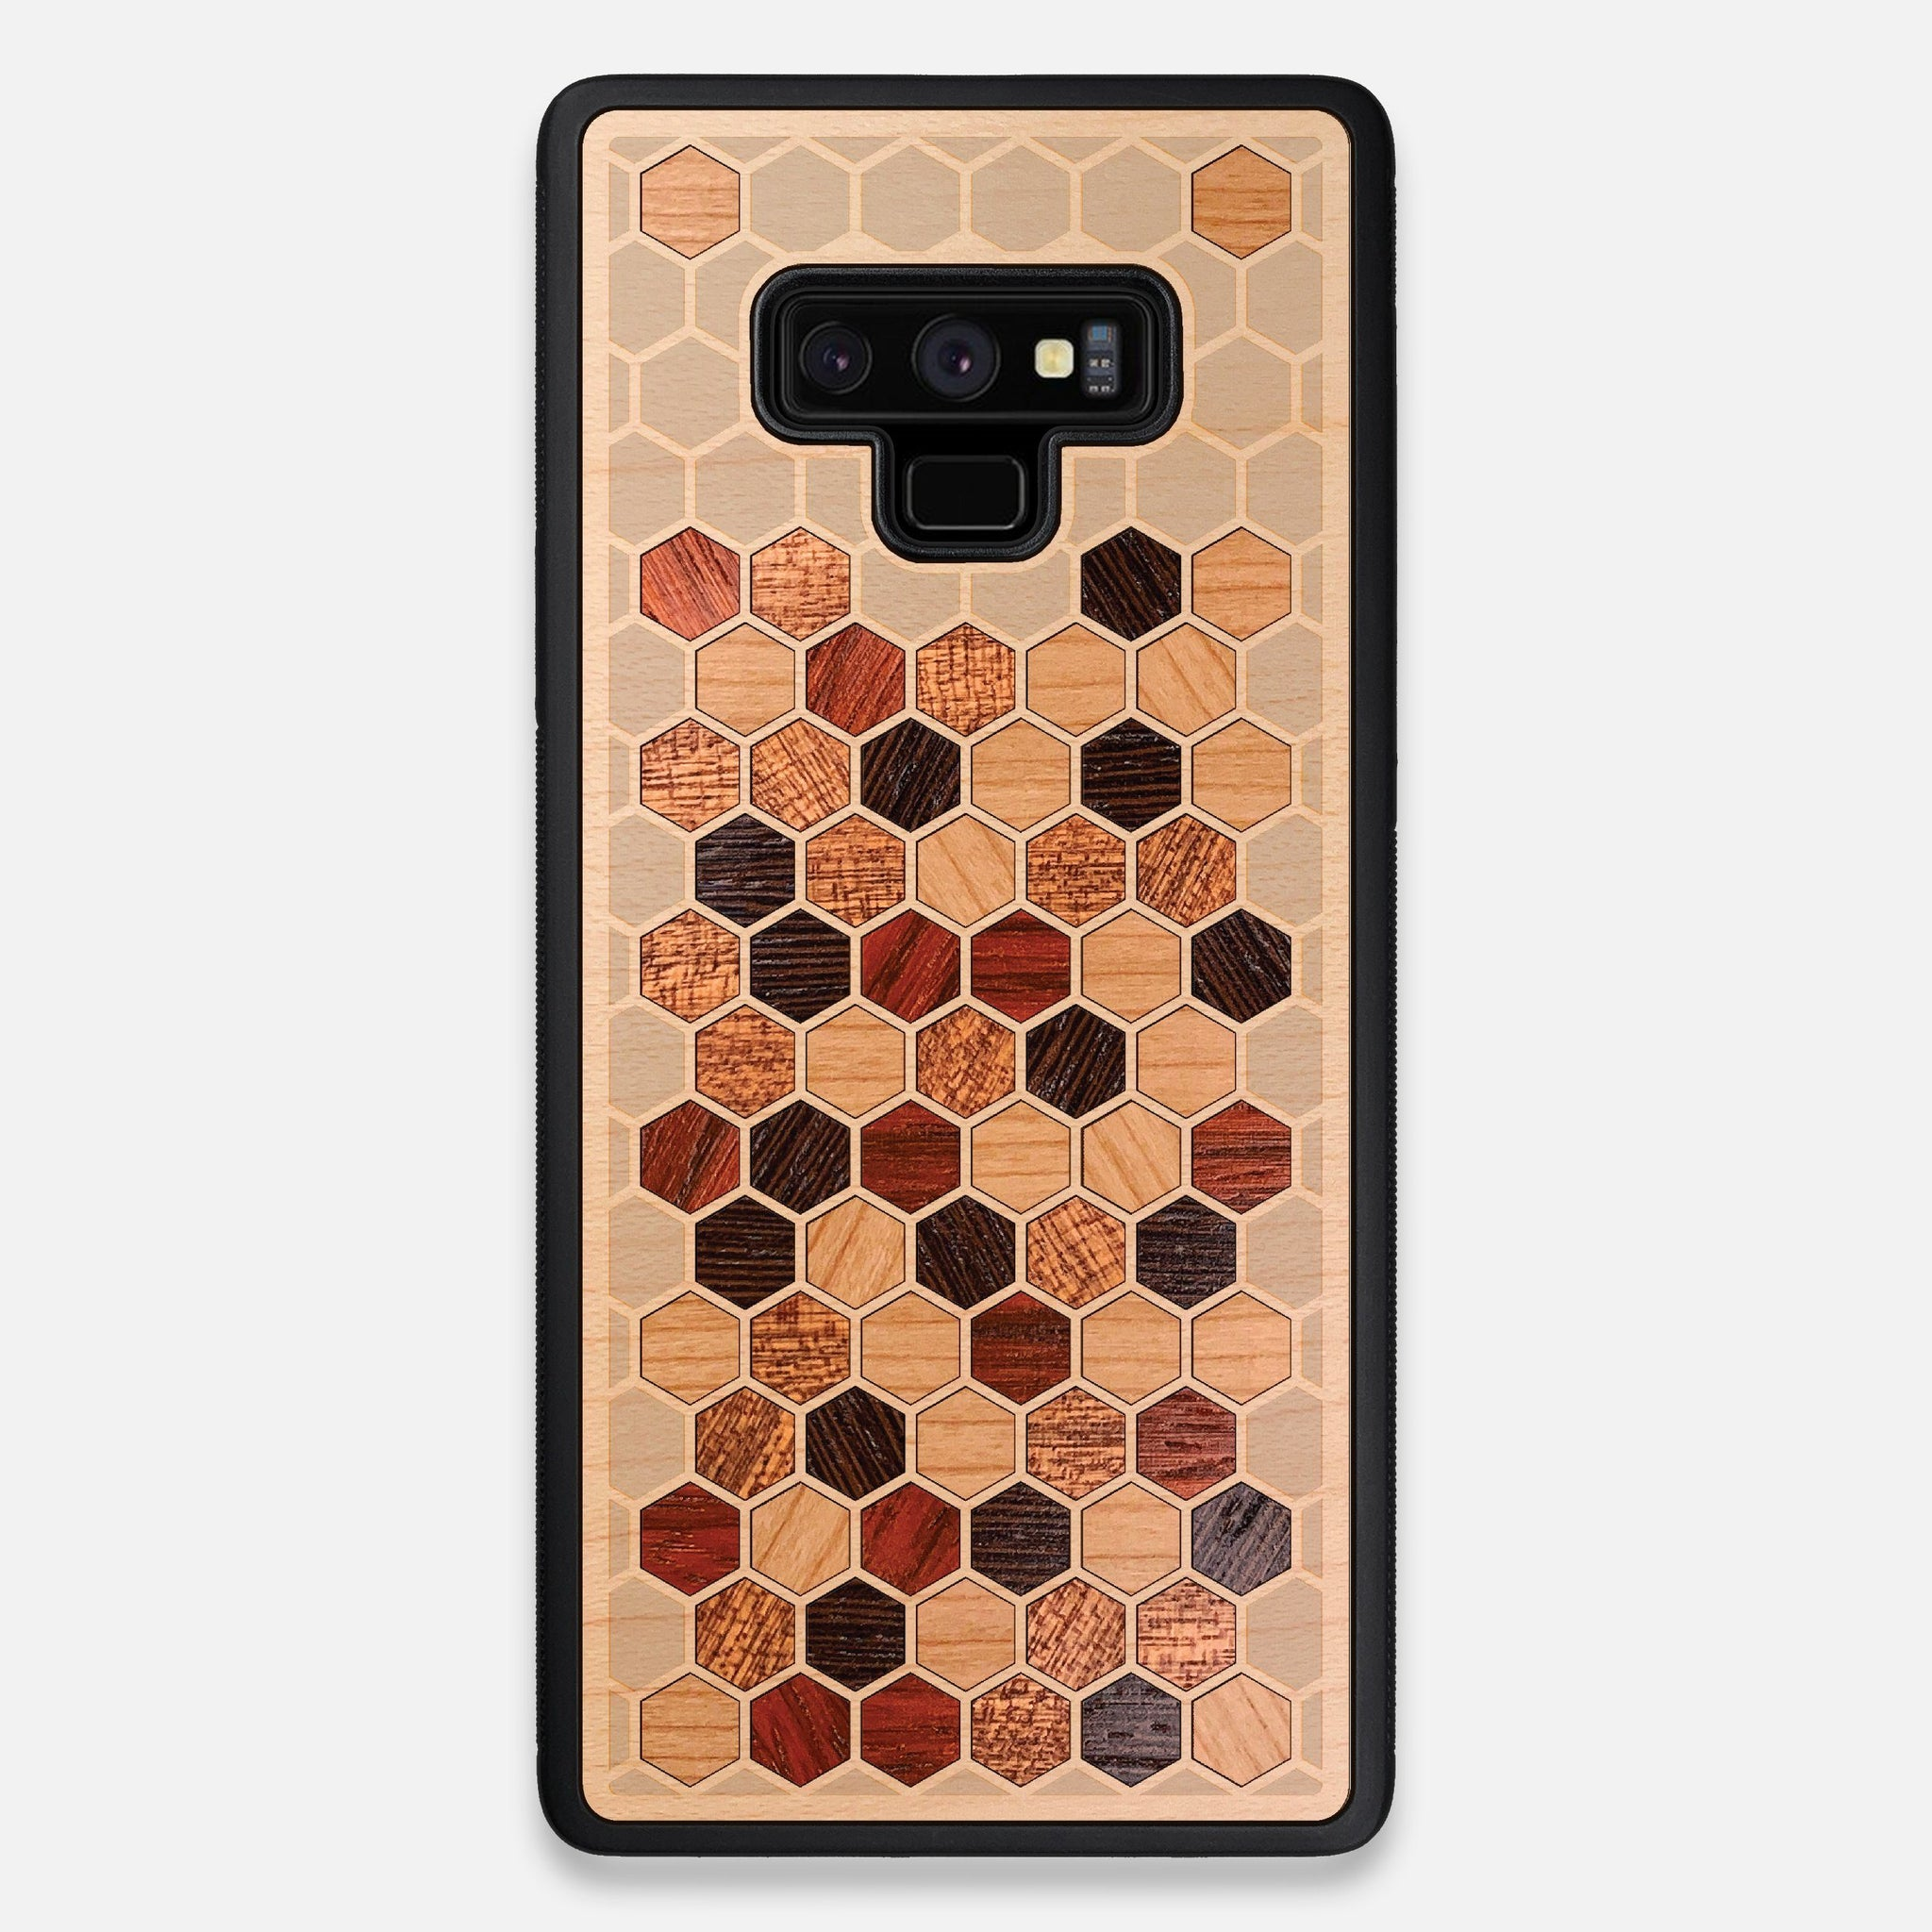 Front view of the Cellular Maple Wood Galaxy Note 9 Case by Keyway Designs